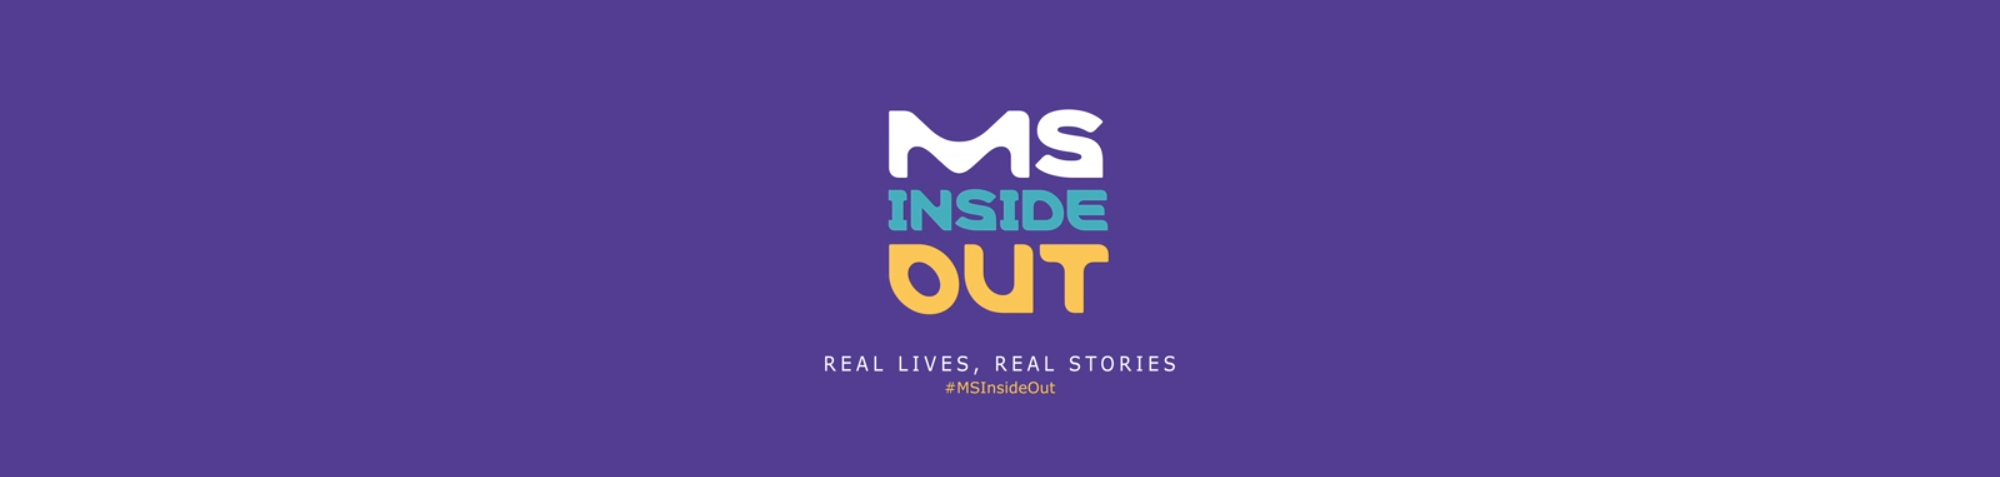 MS Inside Out Trailer